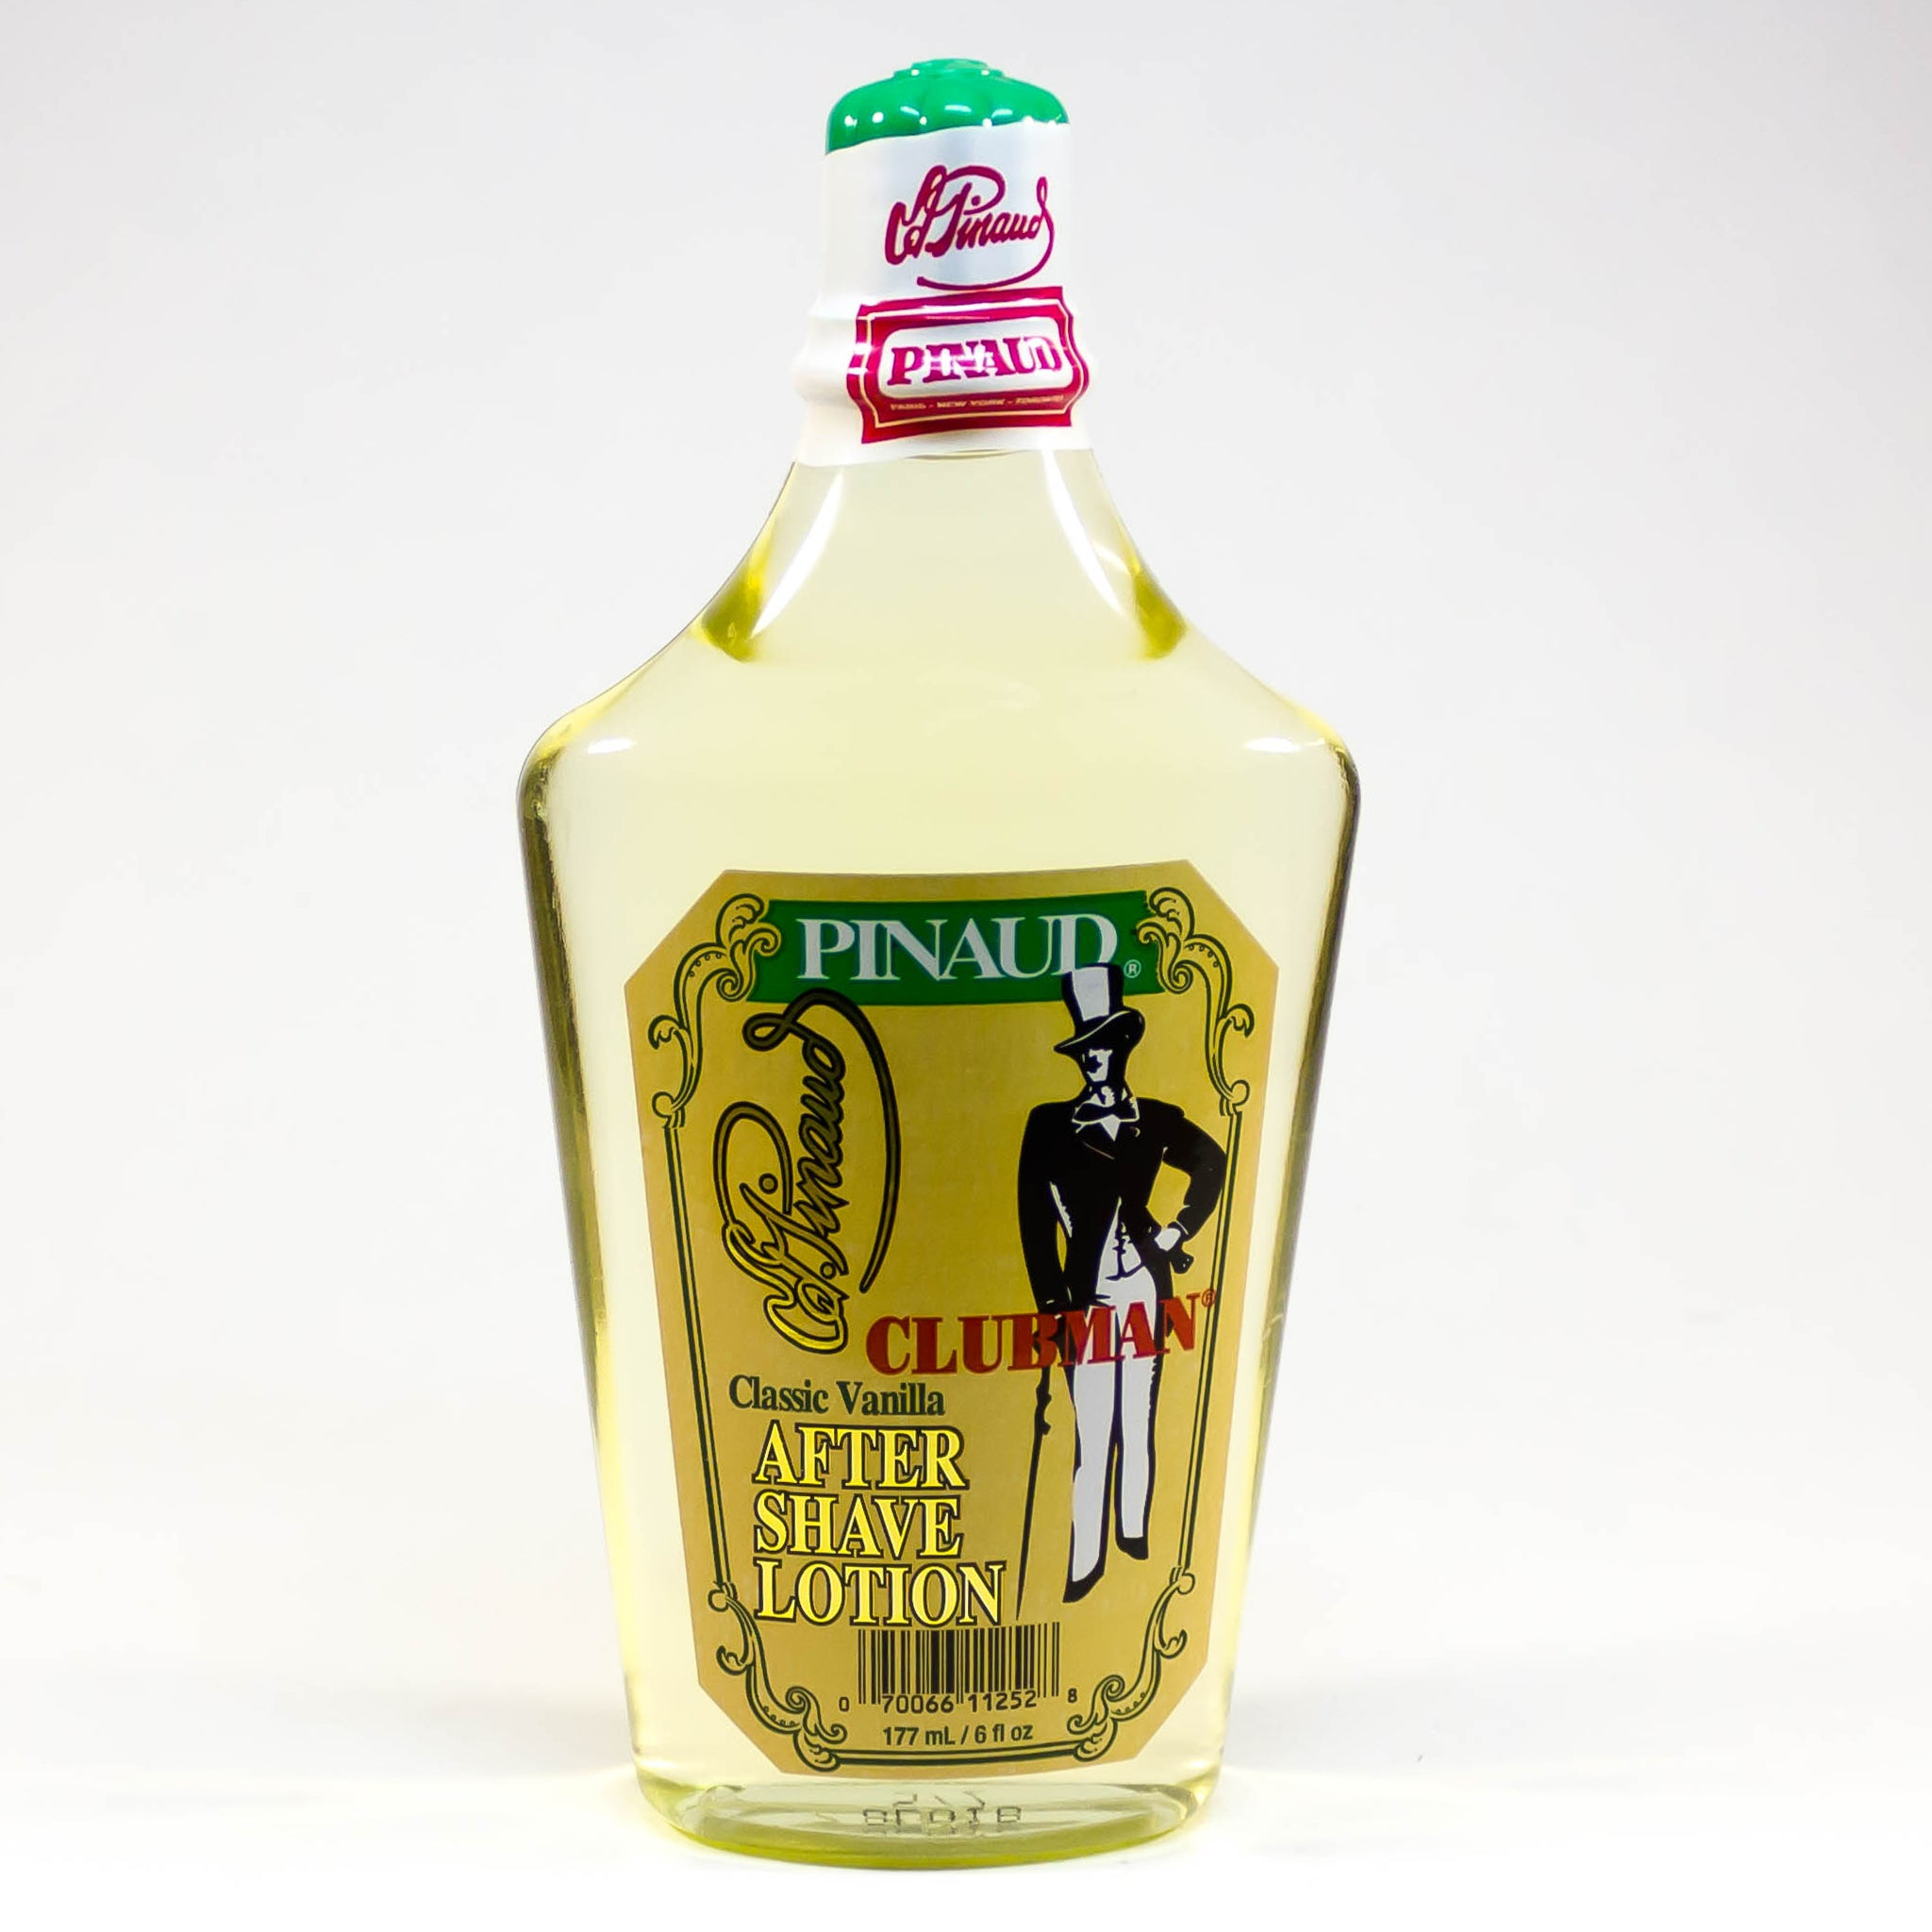 Pinaud After Shave